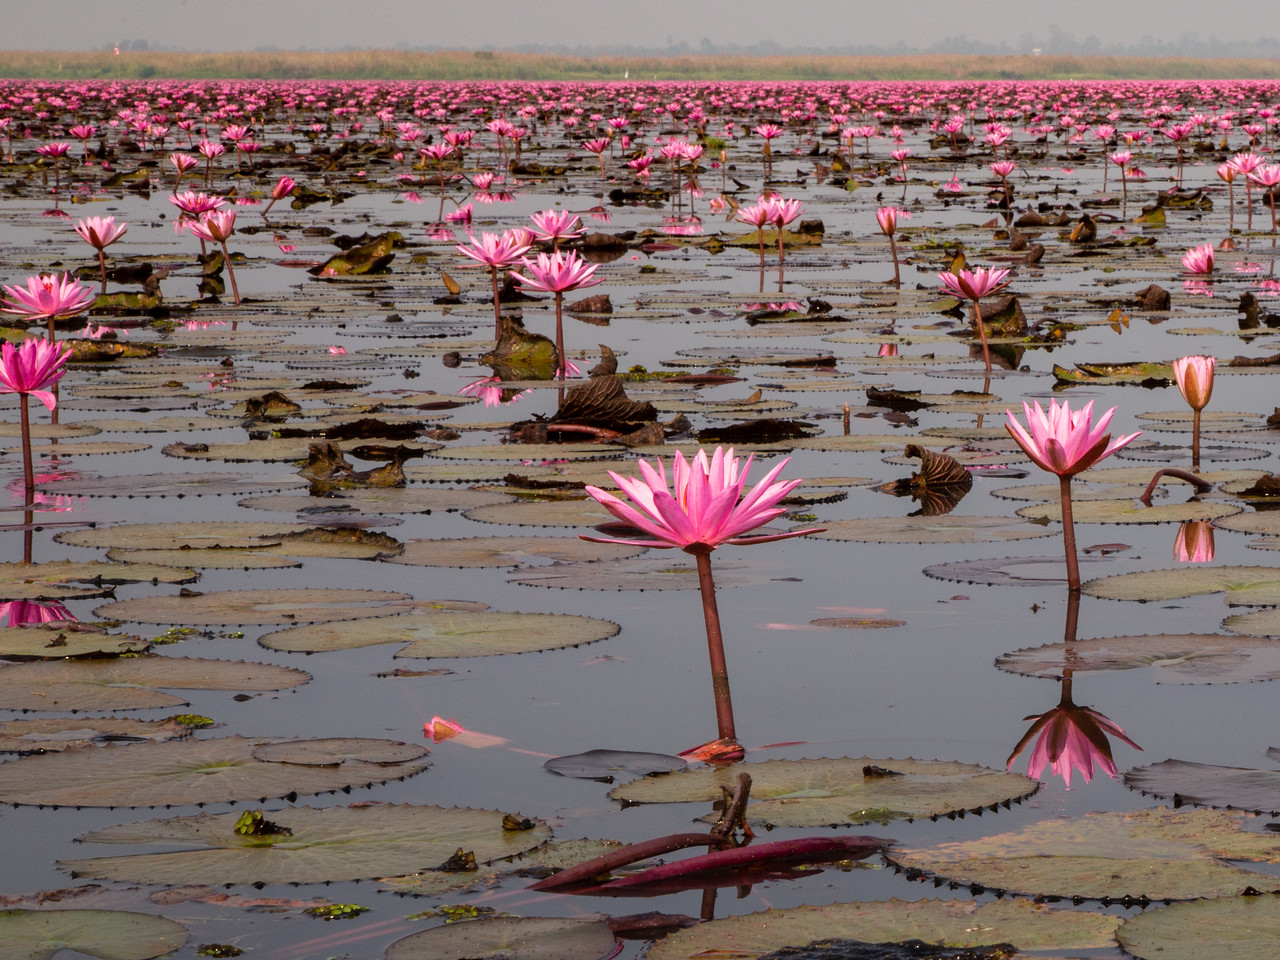 Red Lotus Sea in Thailand